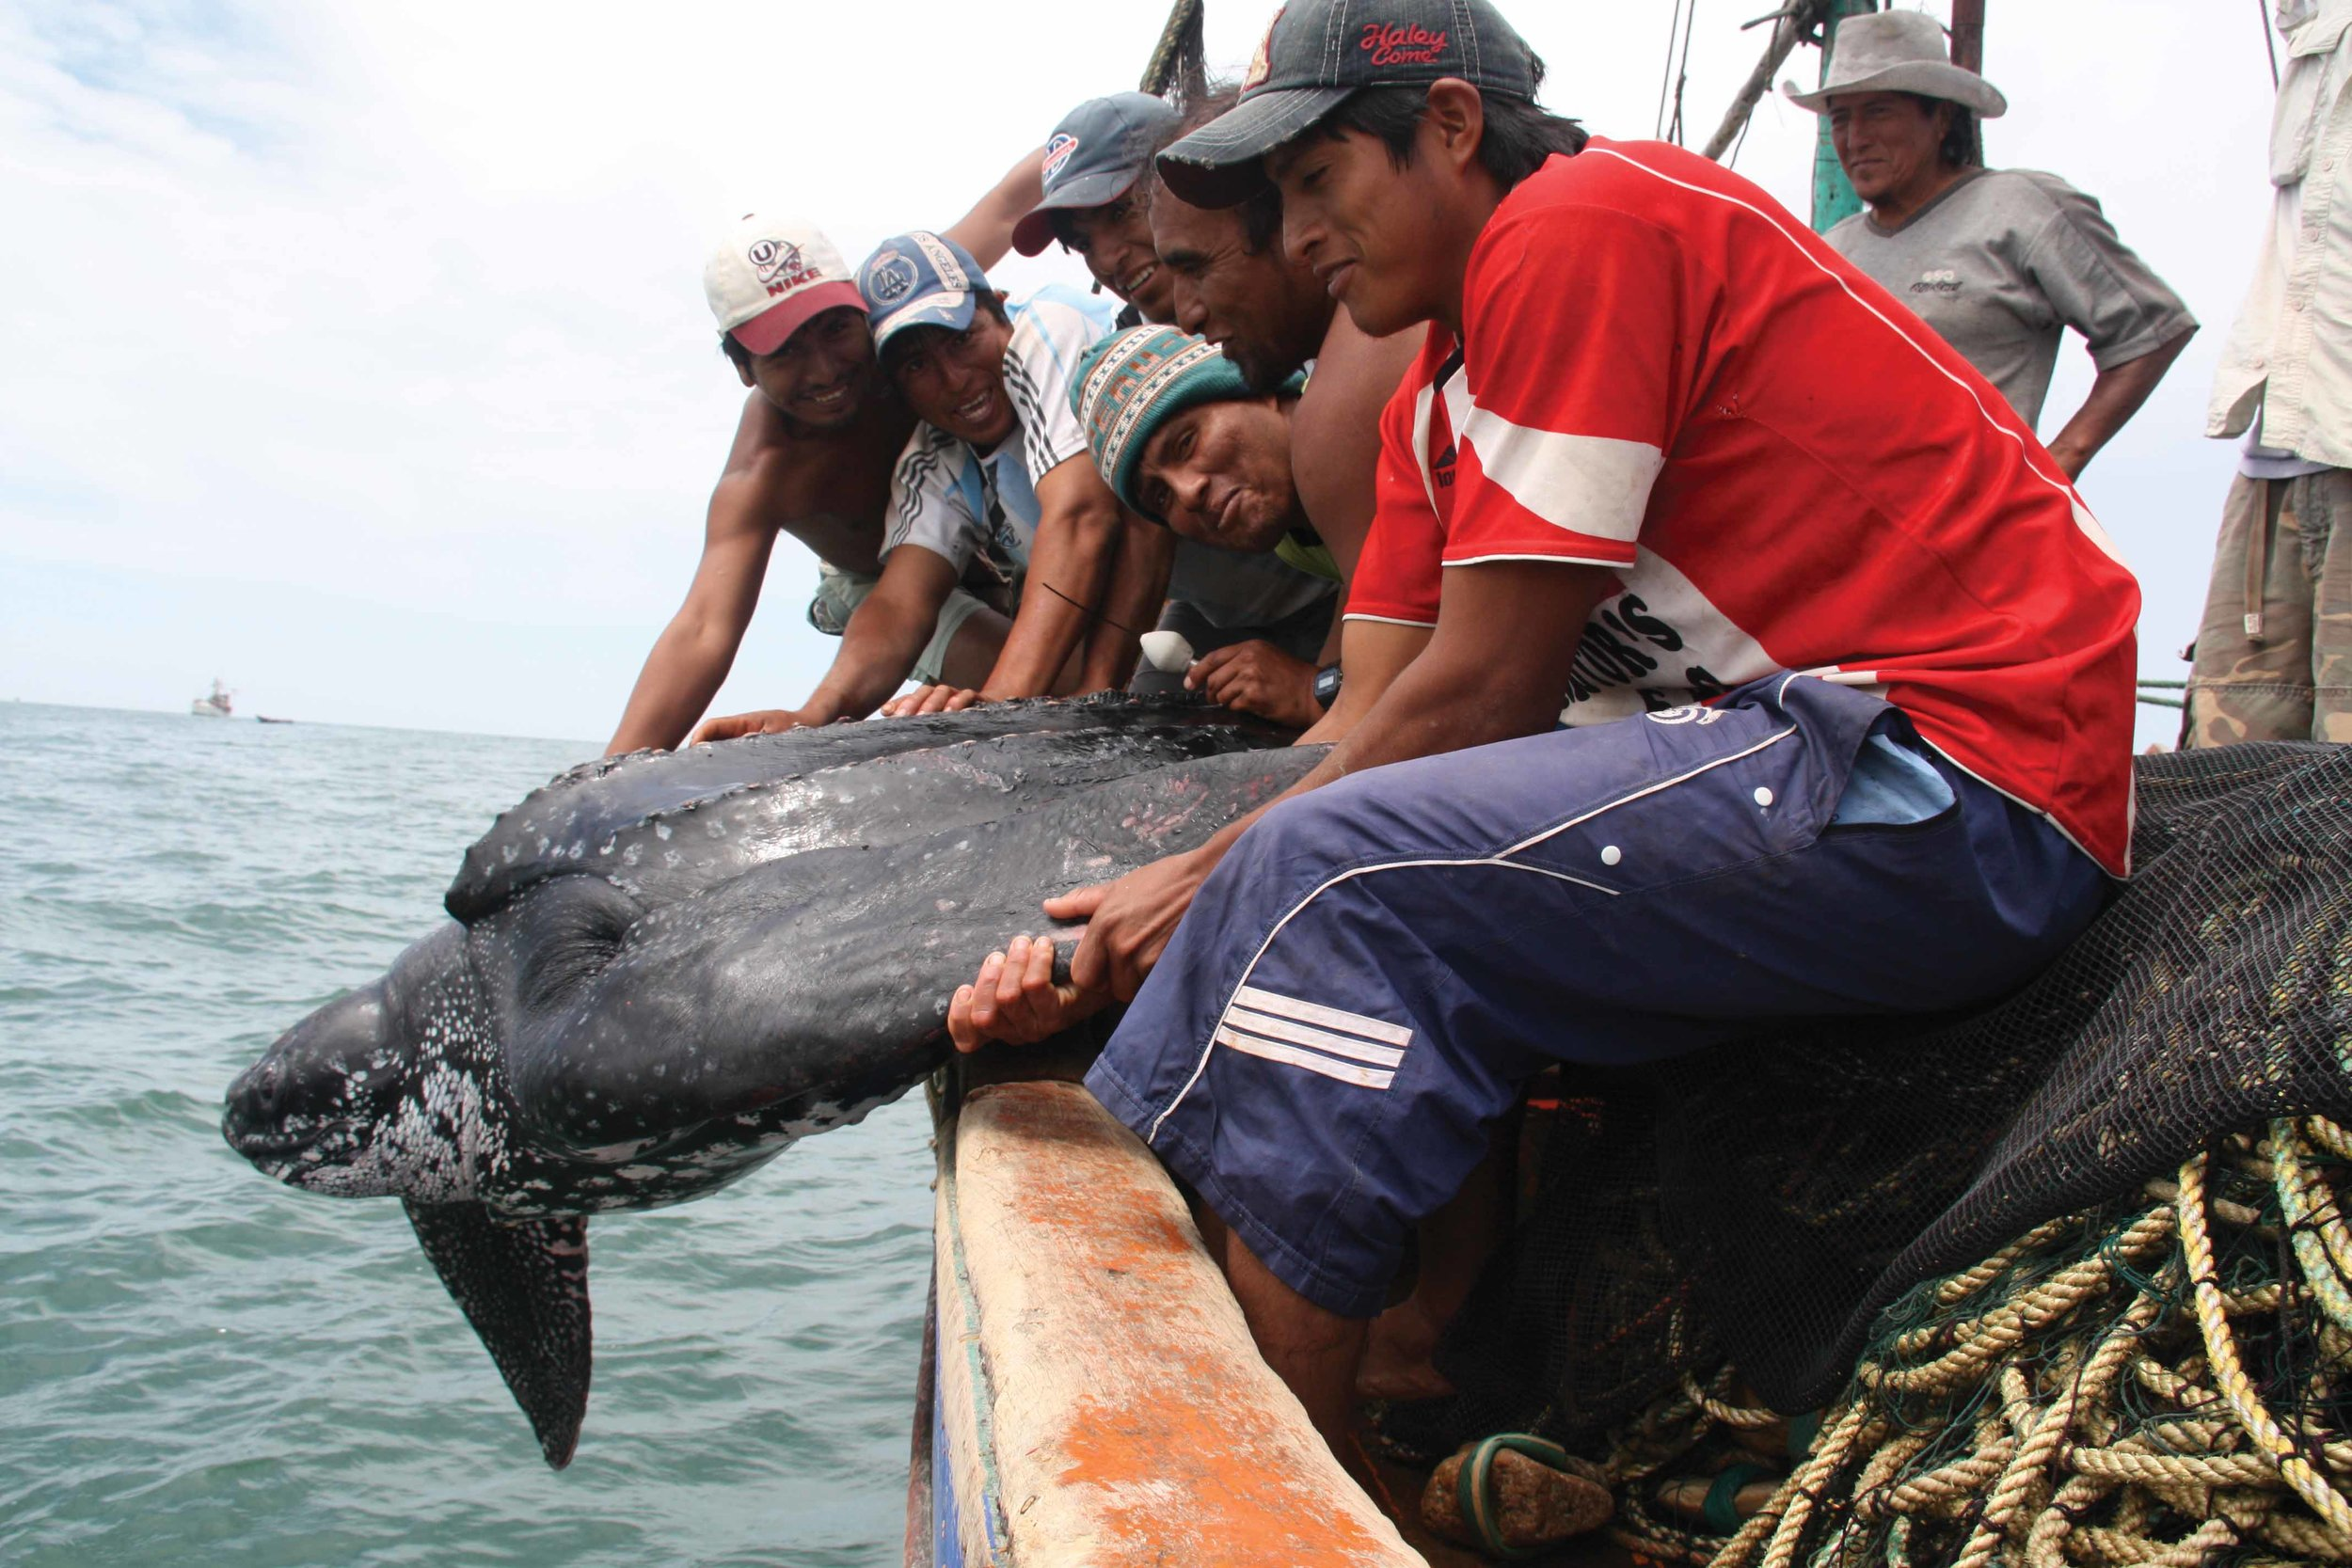 Fishermen off Peru's coast release a leatherback turtle that was incidentally captured and then tagged by researchers. © Joanna Alfaro